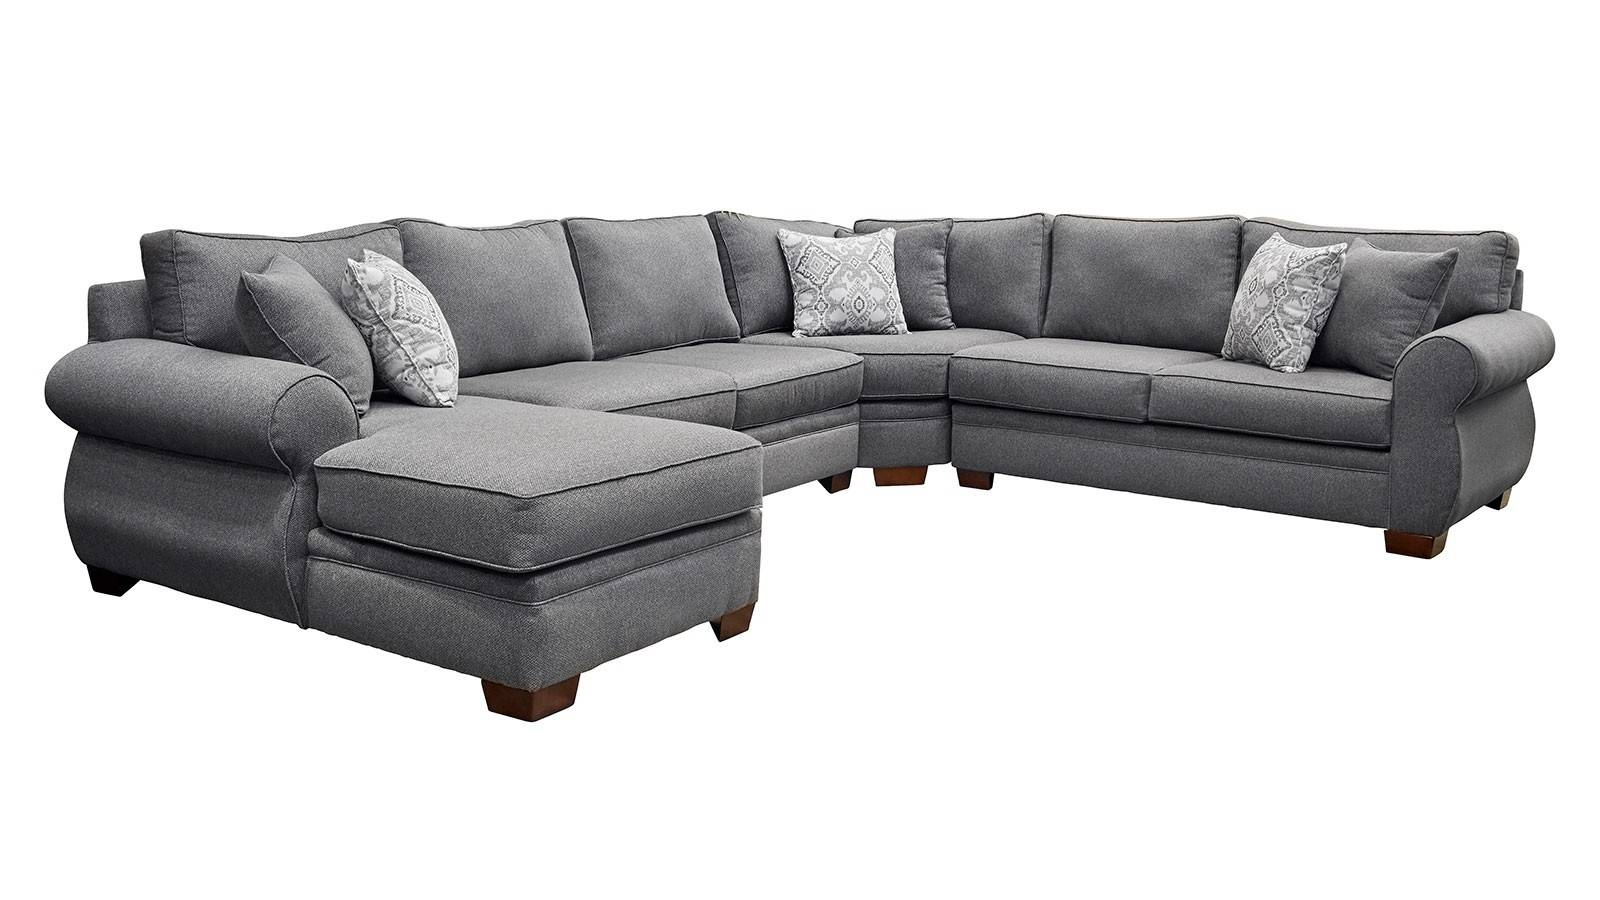 Living Room Sectionals | Gallery Furniture regarding Living Room Sofas (Image 19 of 30)